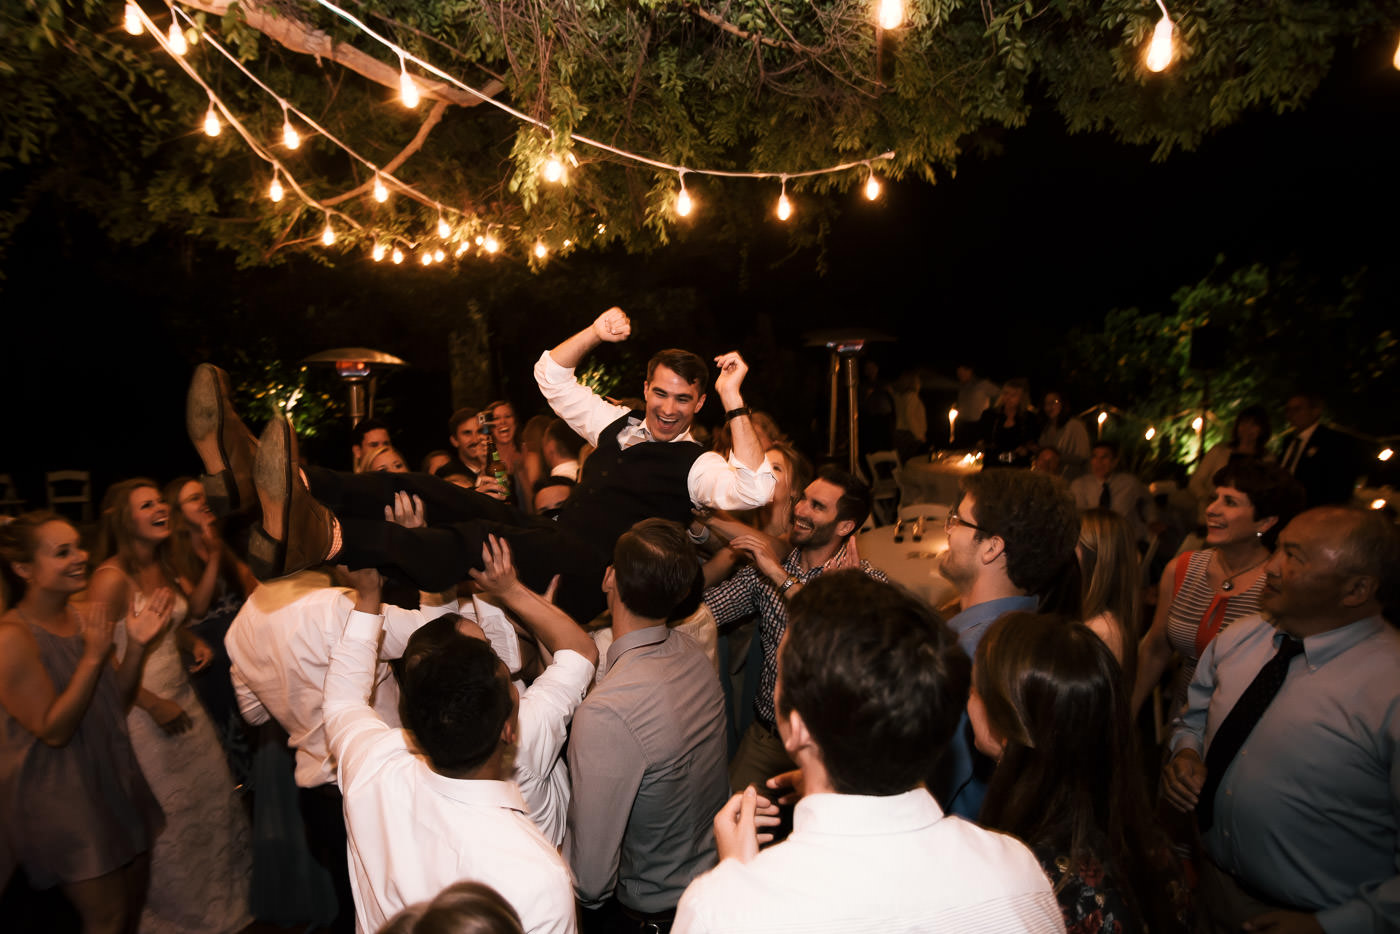 Wedding guests lift the groom into the air and carry him across the dance floor in Temecula California